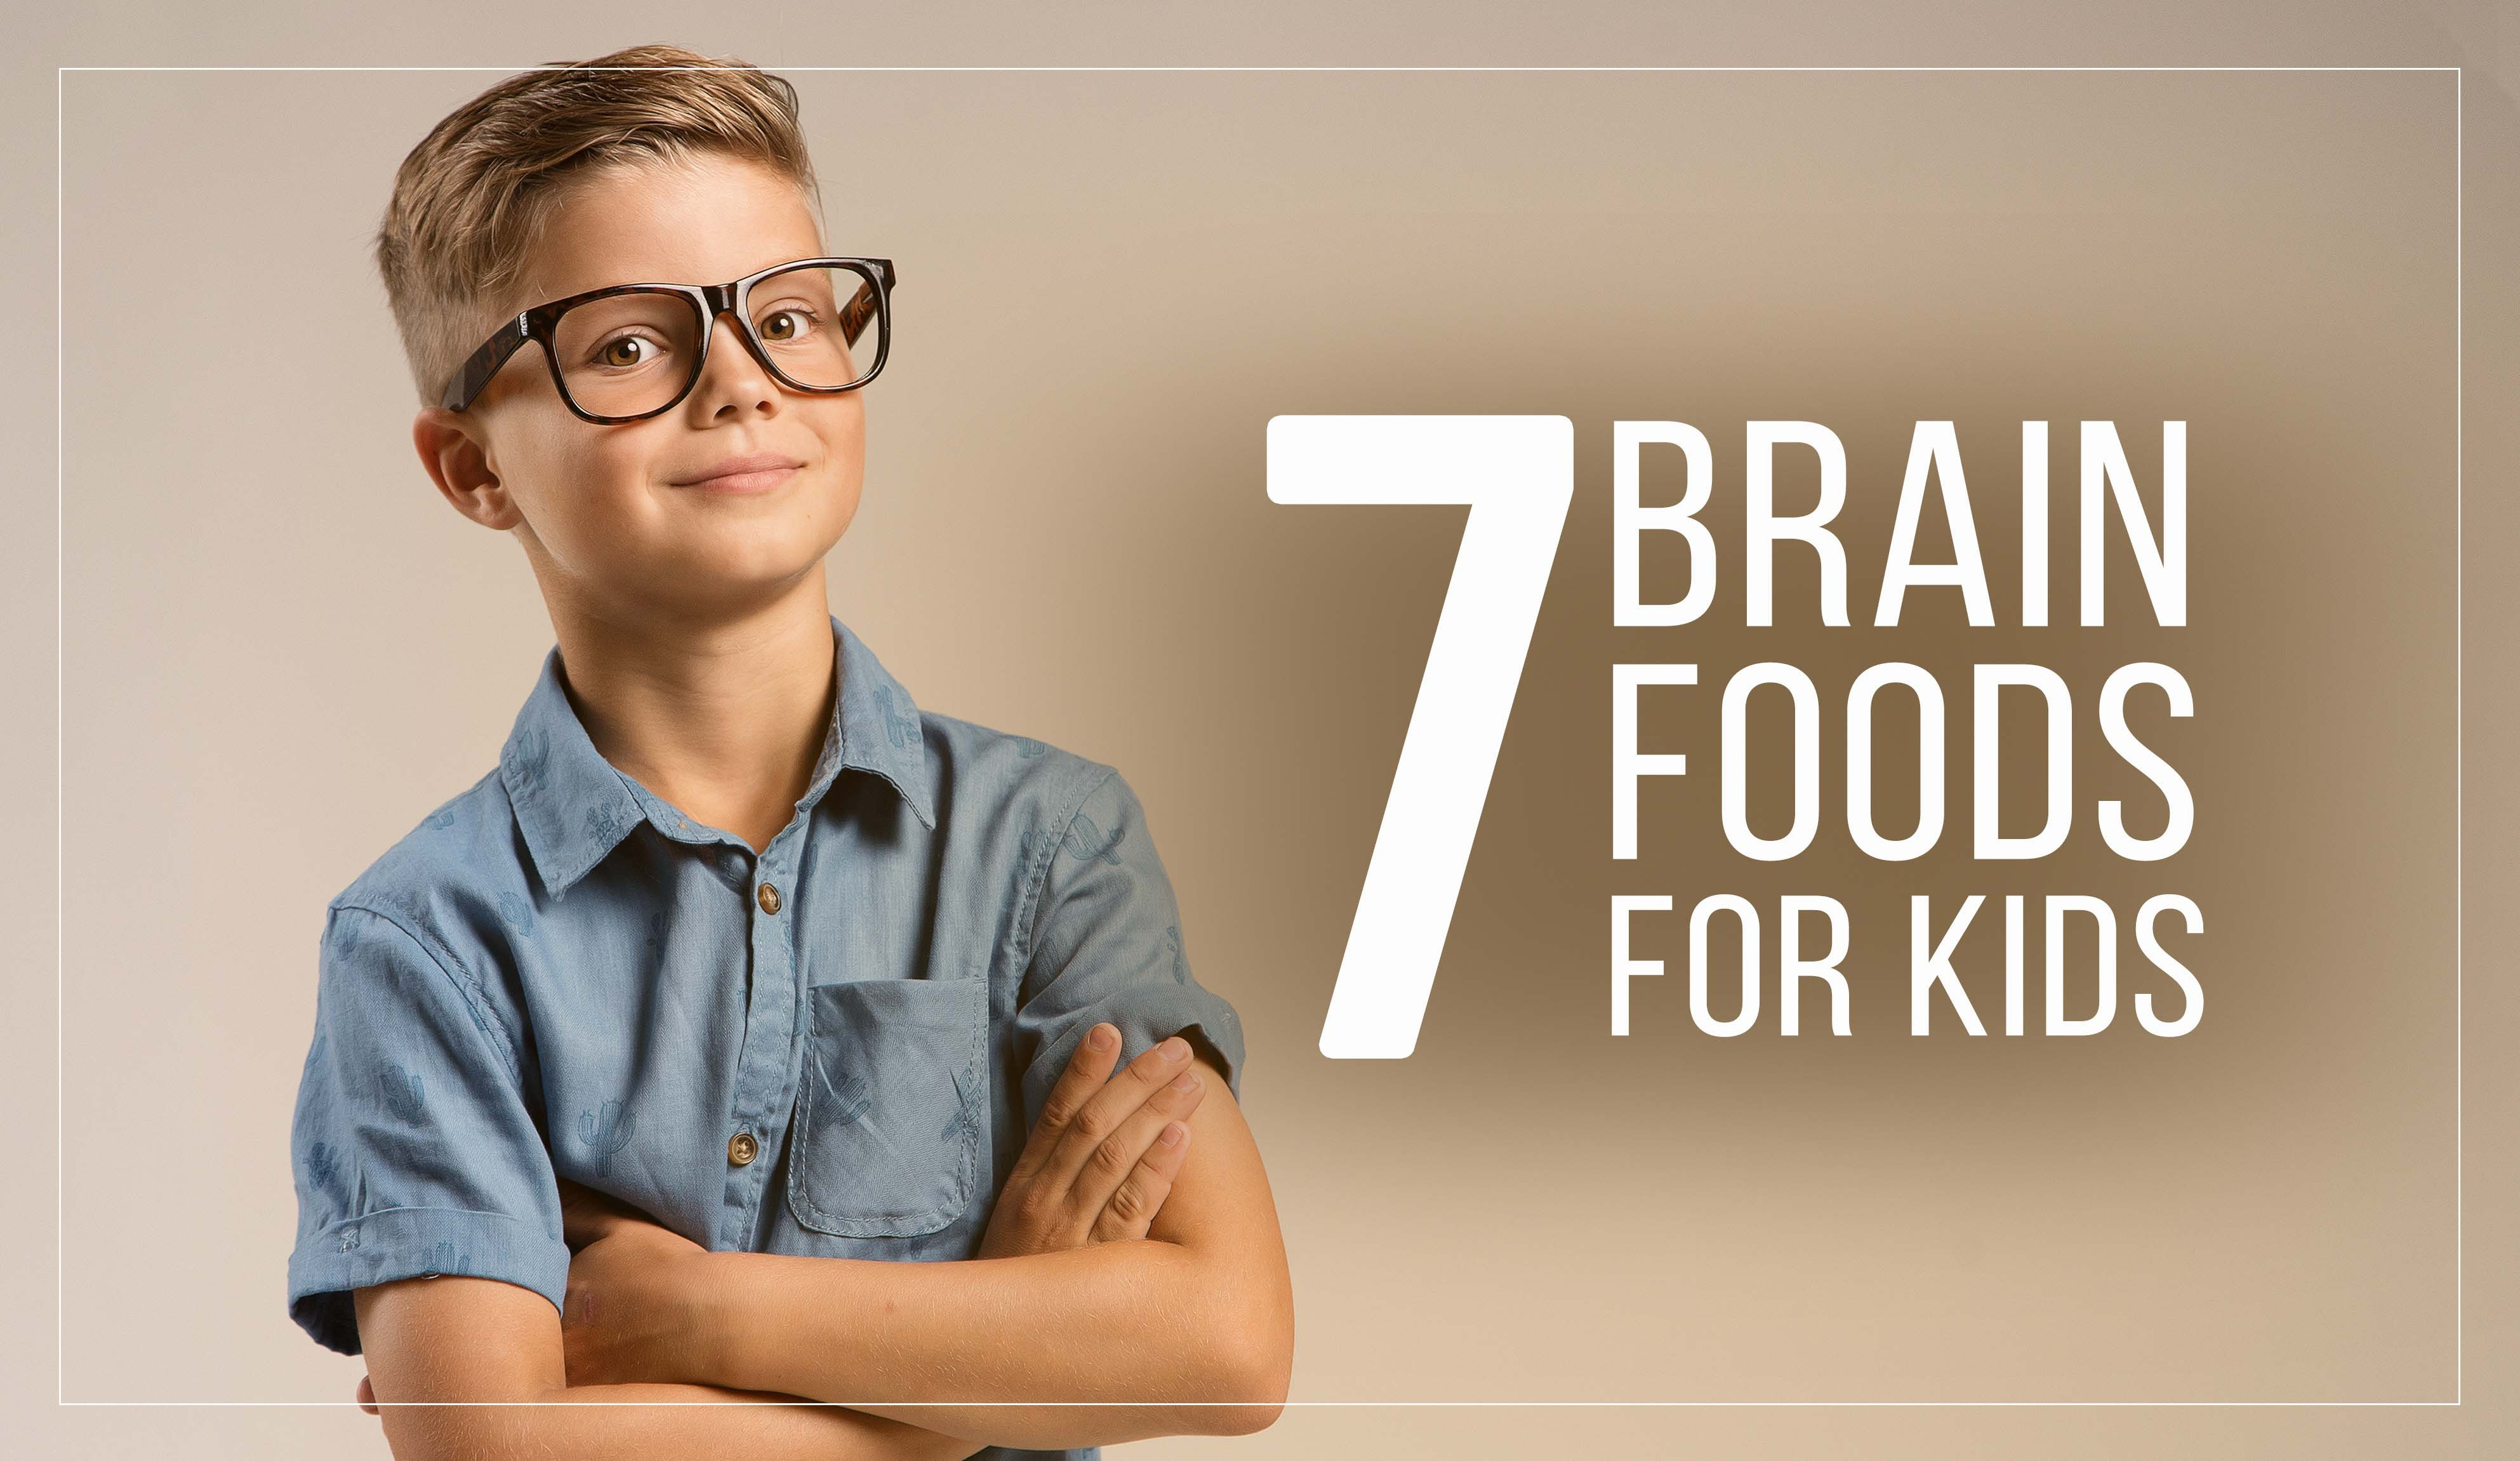 7 Brain Foods for Kids